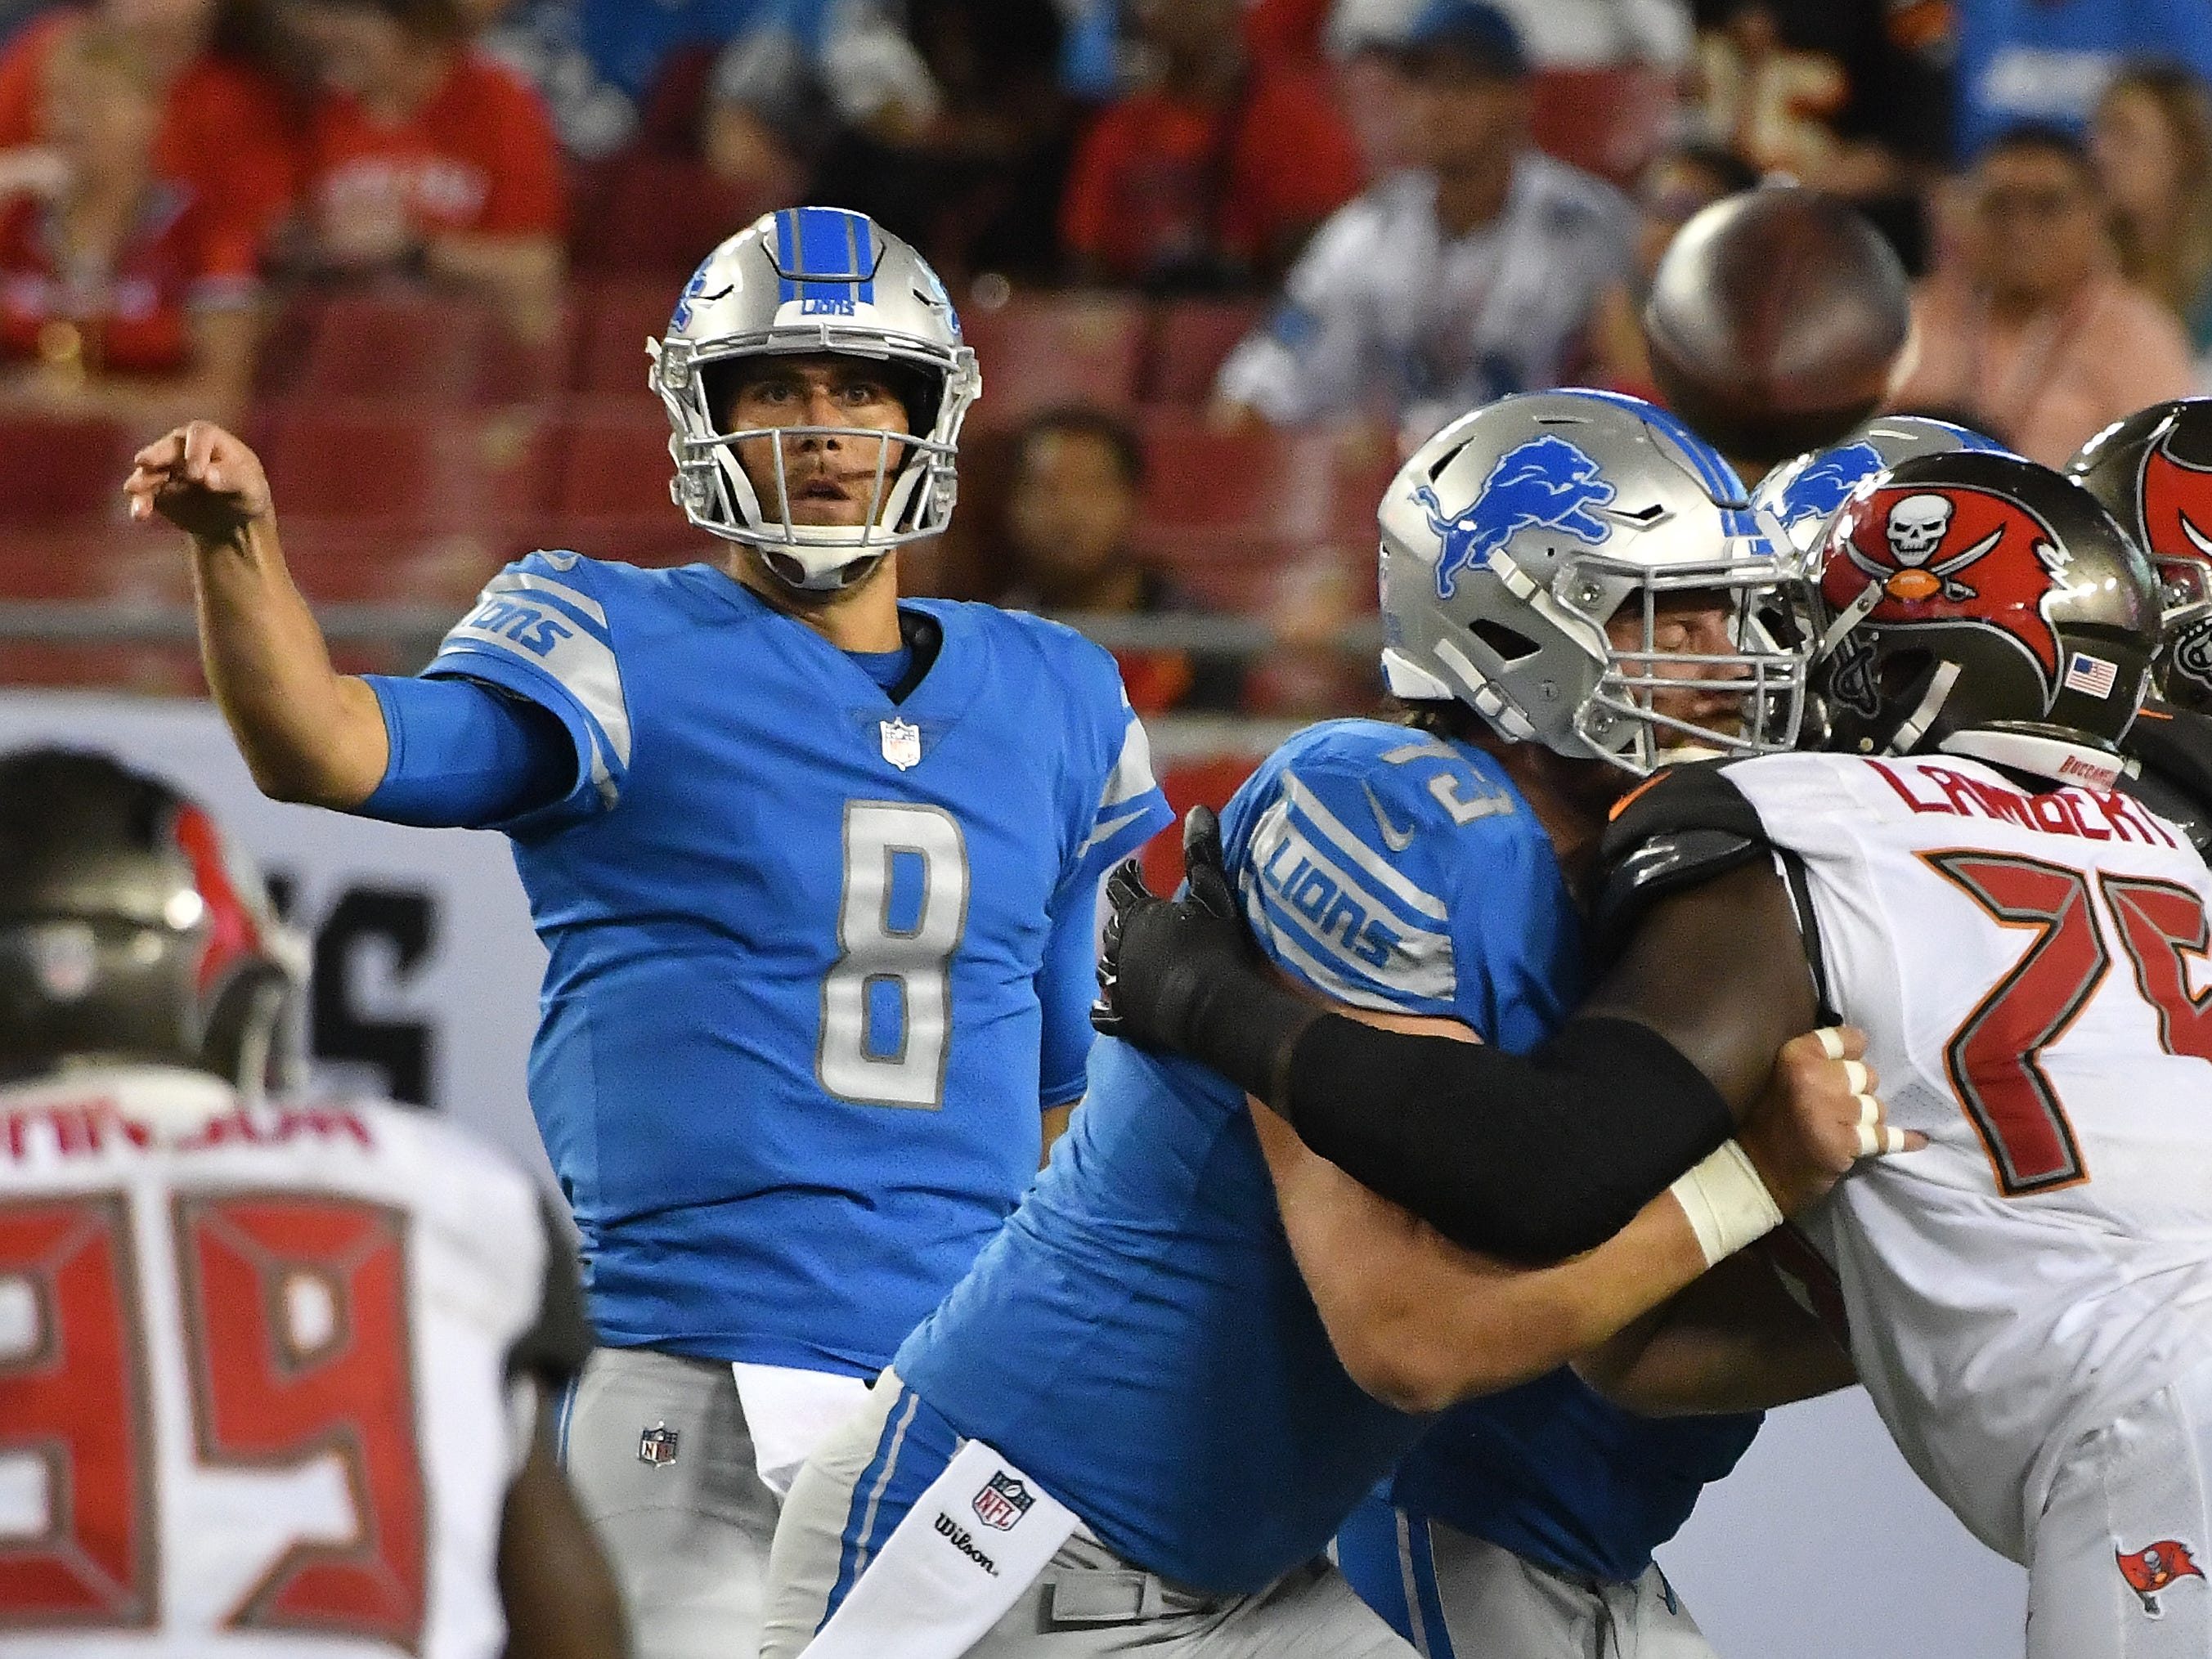 Lions quarterback Matt Cassel throws over the pile in front of him in the third quarter.